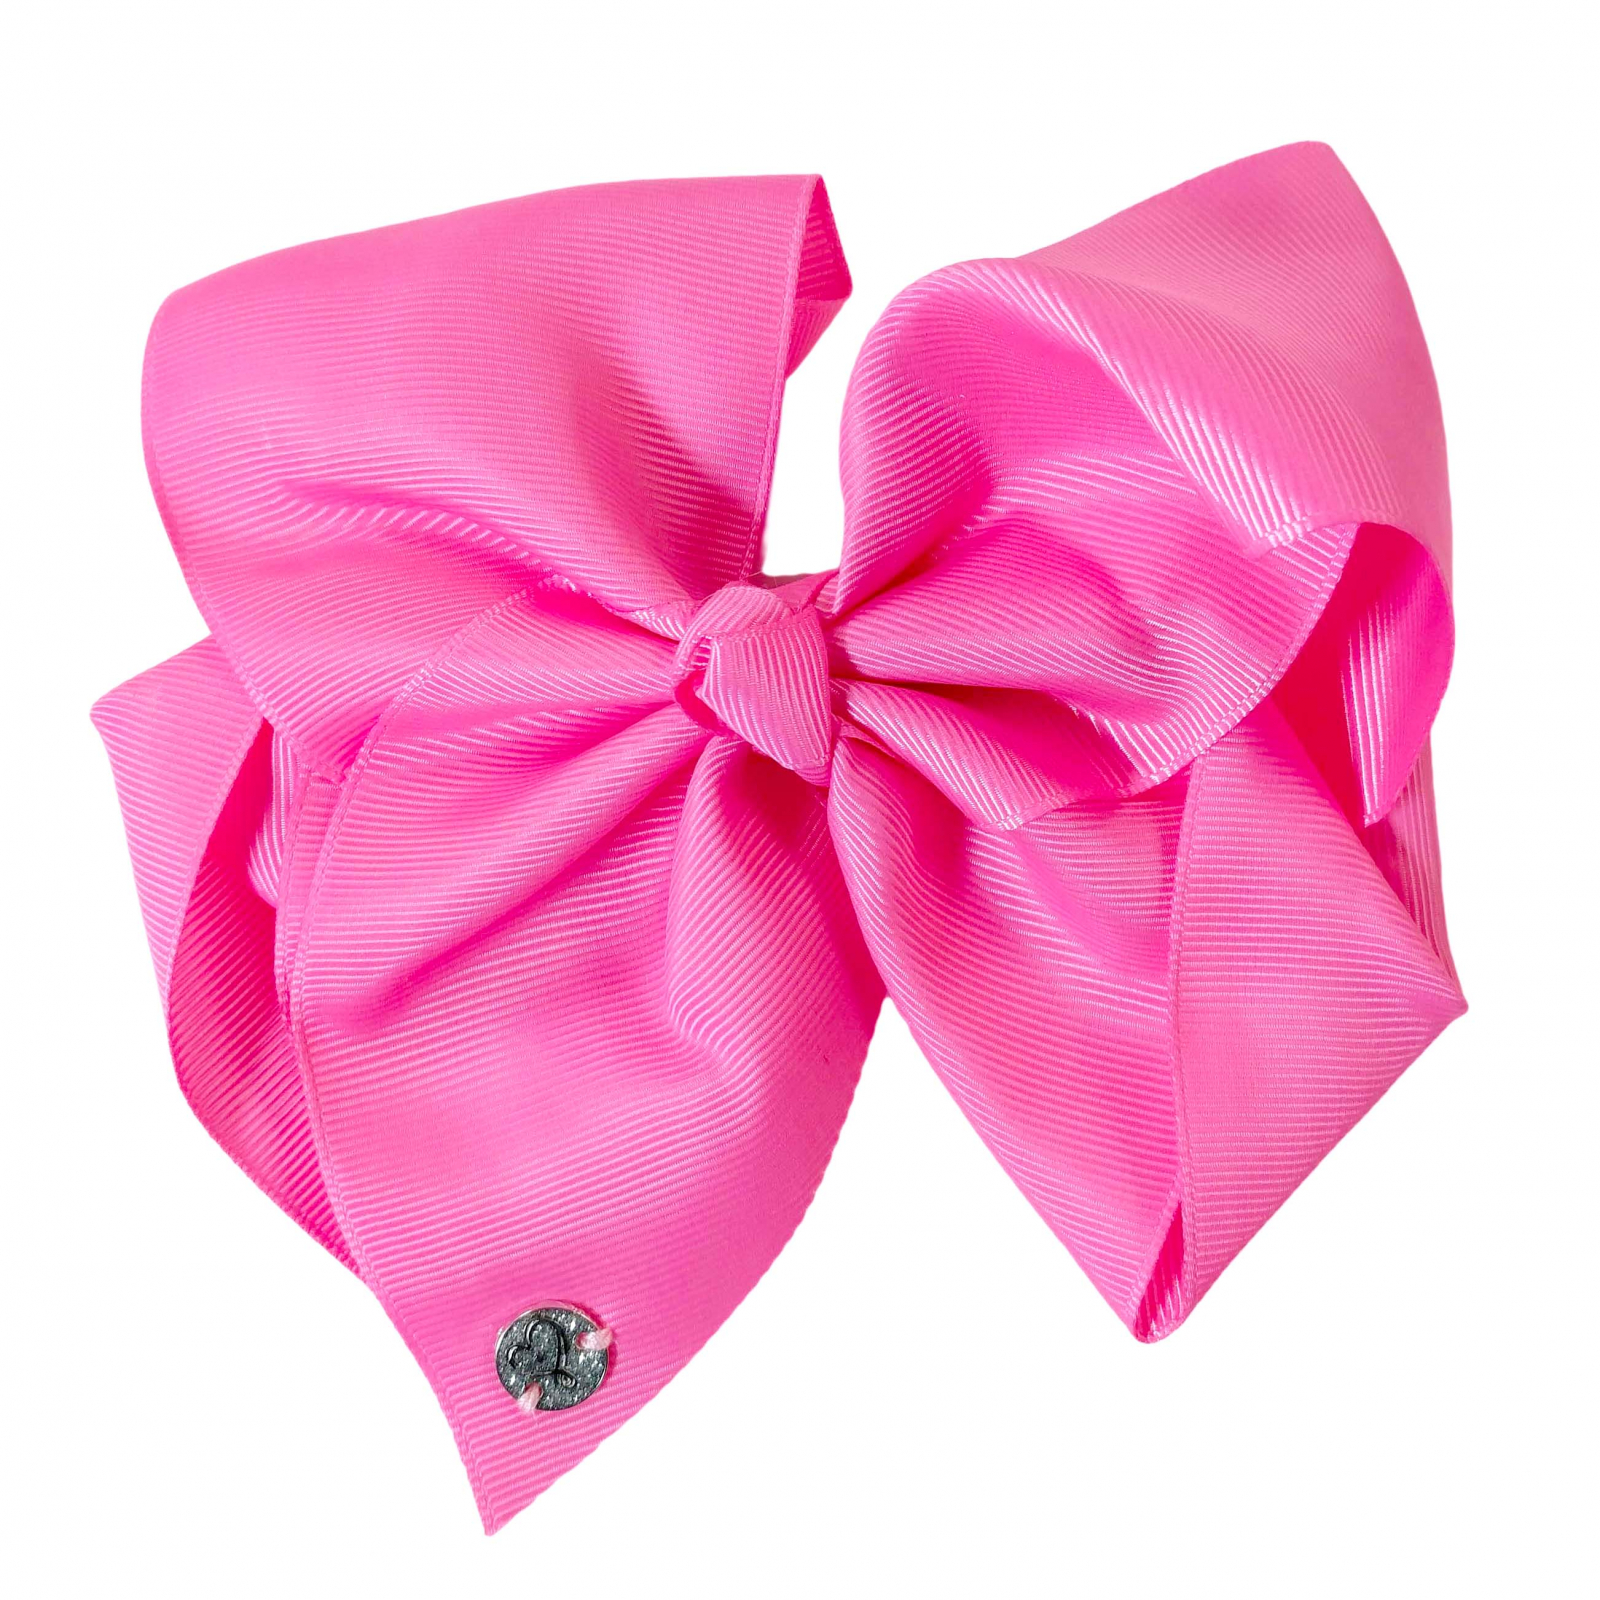 Nickelodeon JoJo Siwa Girls Large Bright Pink Bow Accessory